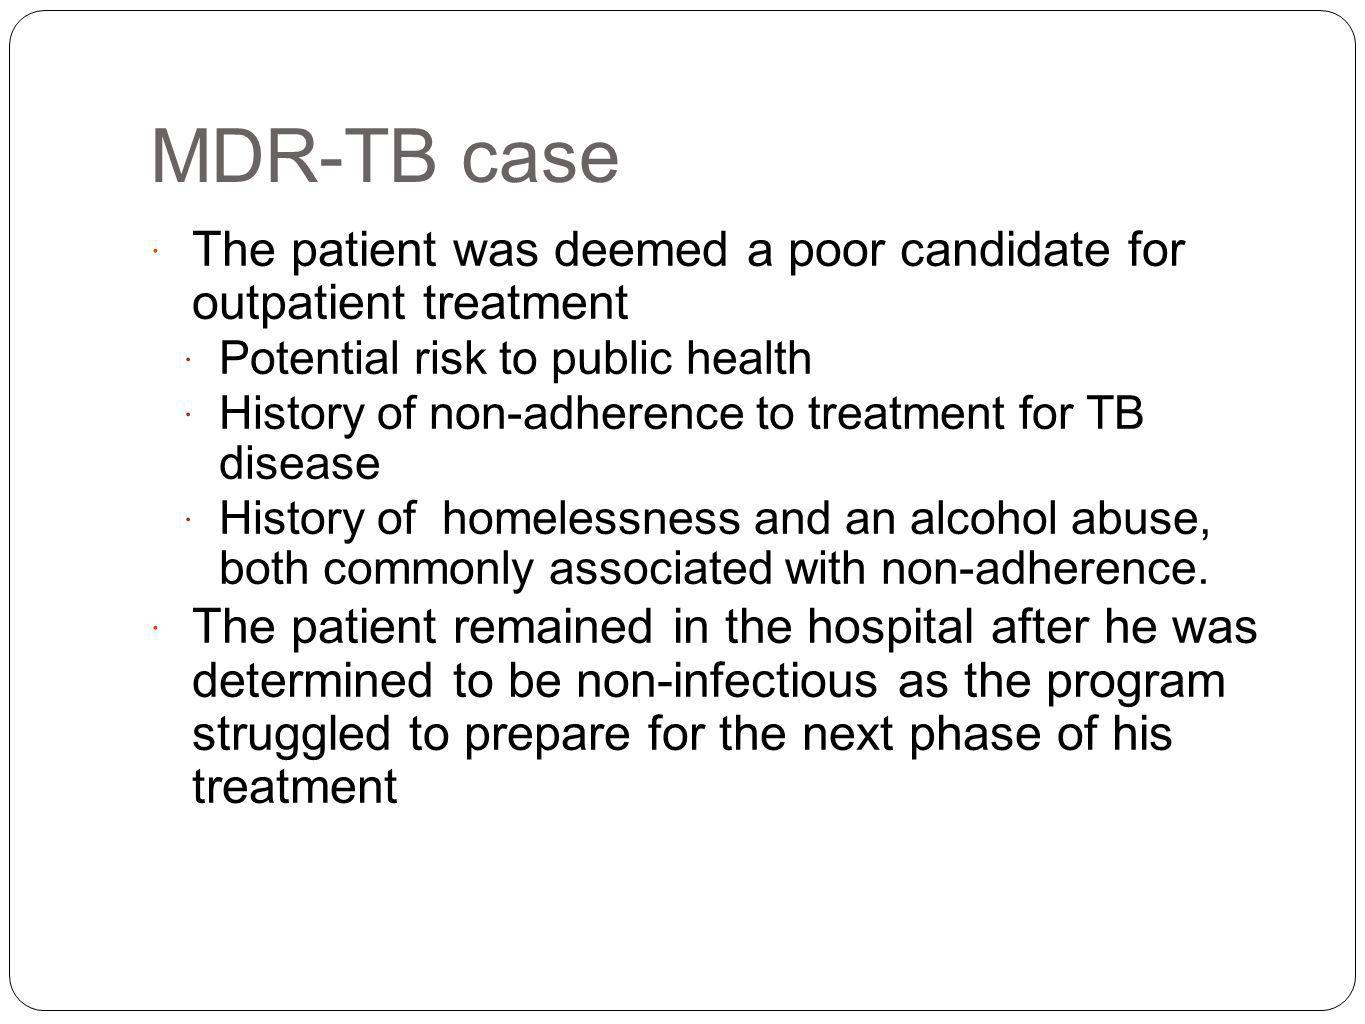 MDR-TB case The patient was deemed a poor candidate for outpatient treatment. Potential risk to public health.